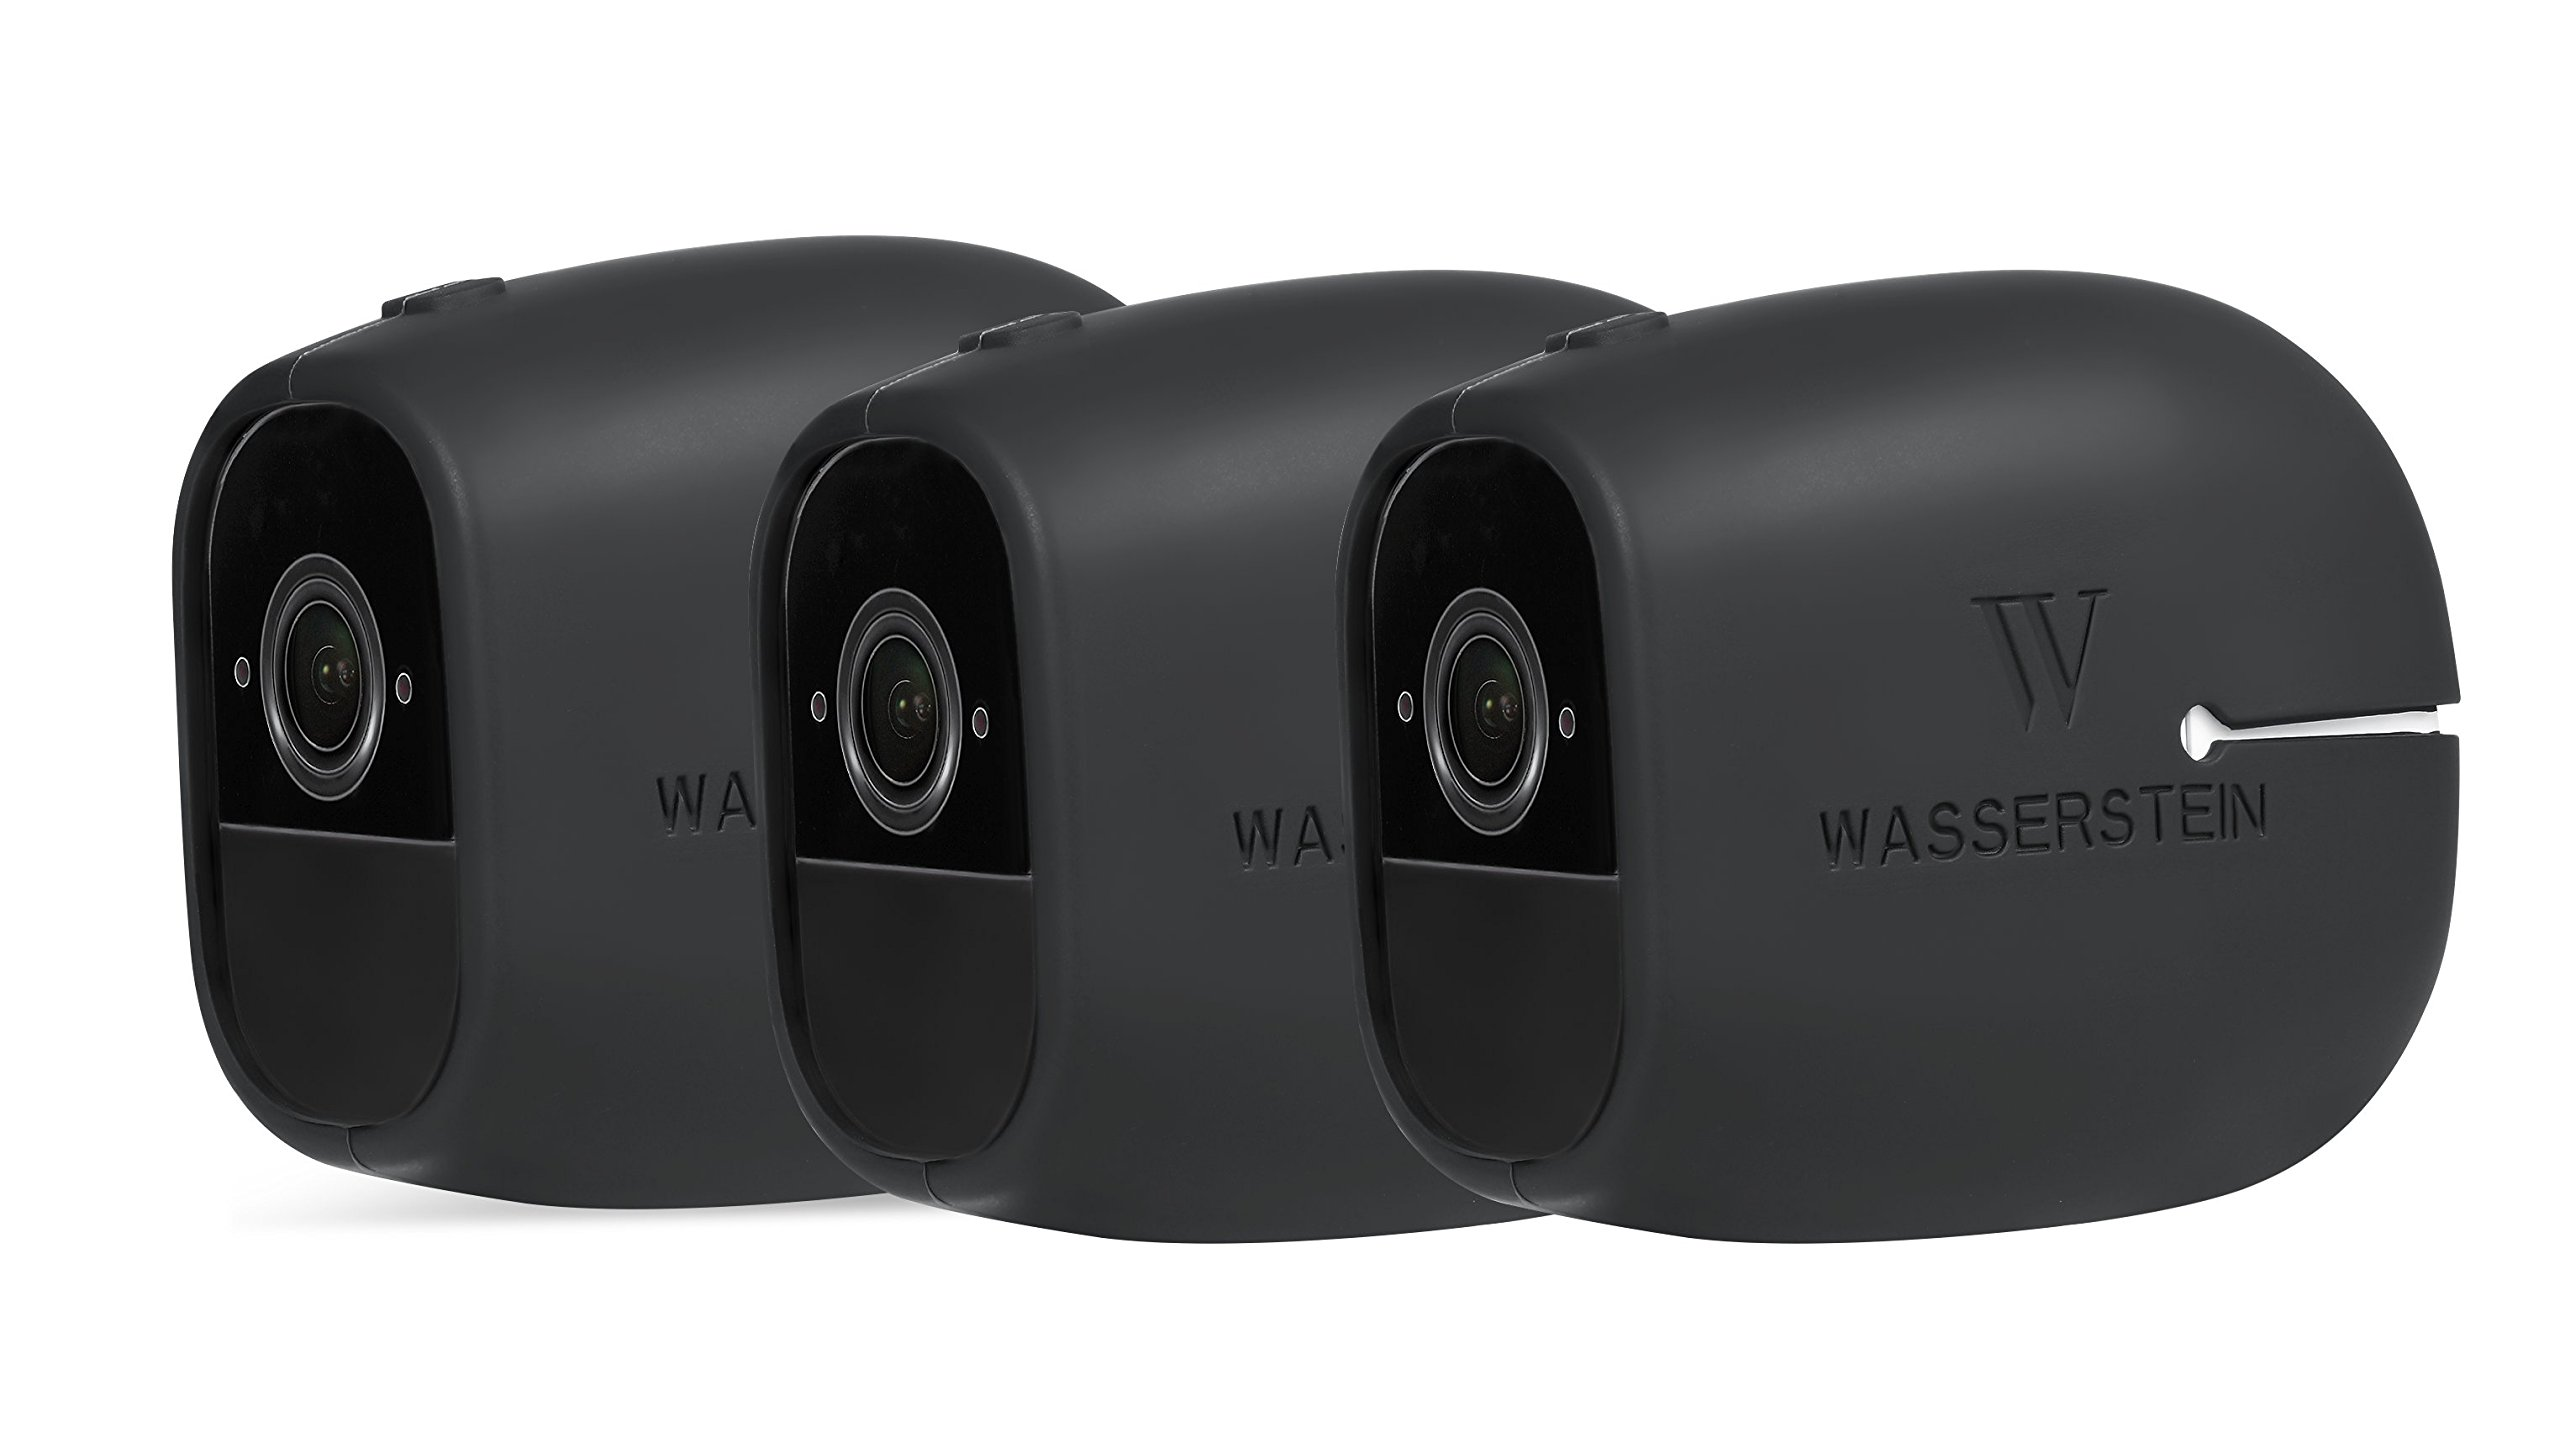 3 x Silicone Skins Compatible with Arlo Pro & Arlo Pro 2 Smart Security - 100% Wire-Free Cameras - by Wasserstein (3 Pack, Black)